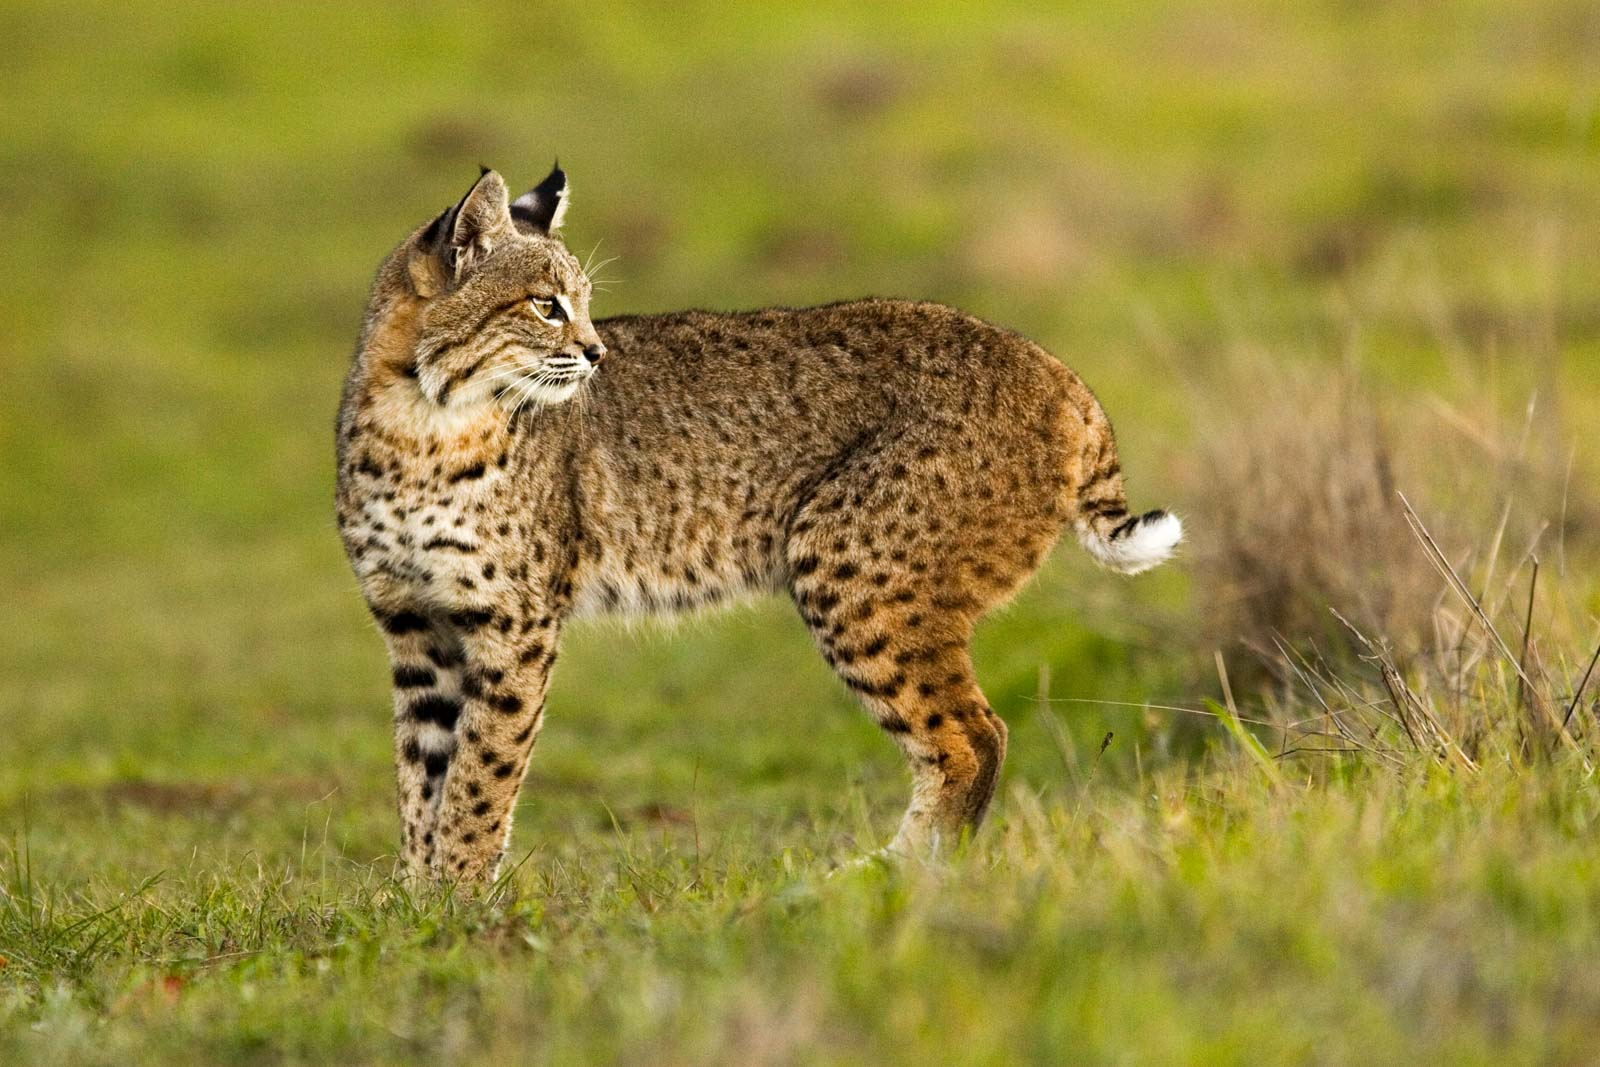 Bobcat during our Bobcat in Grasses during out Bobcats of California Photography Tour